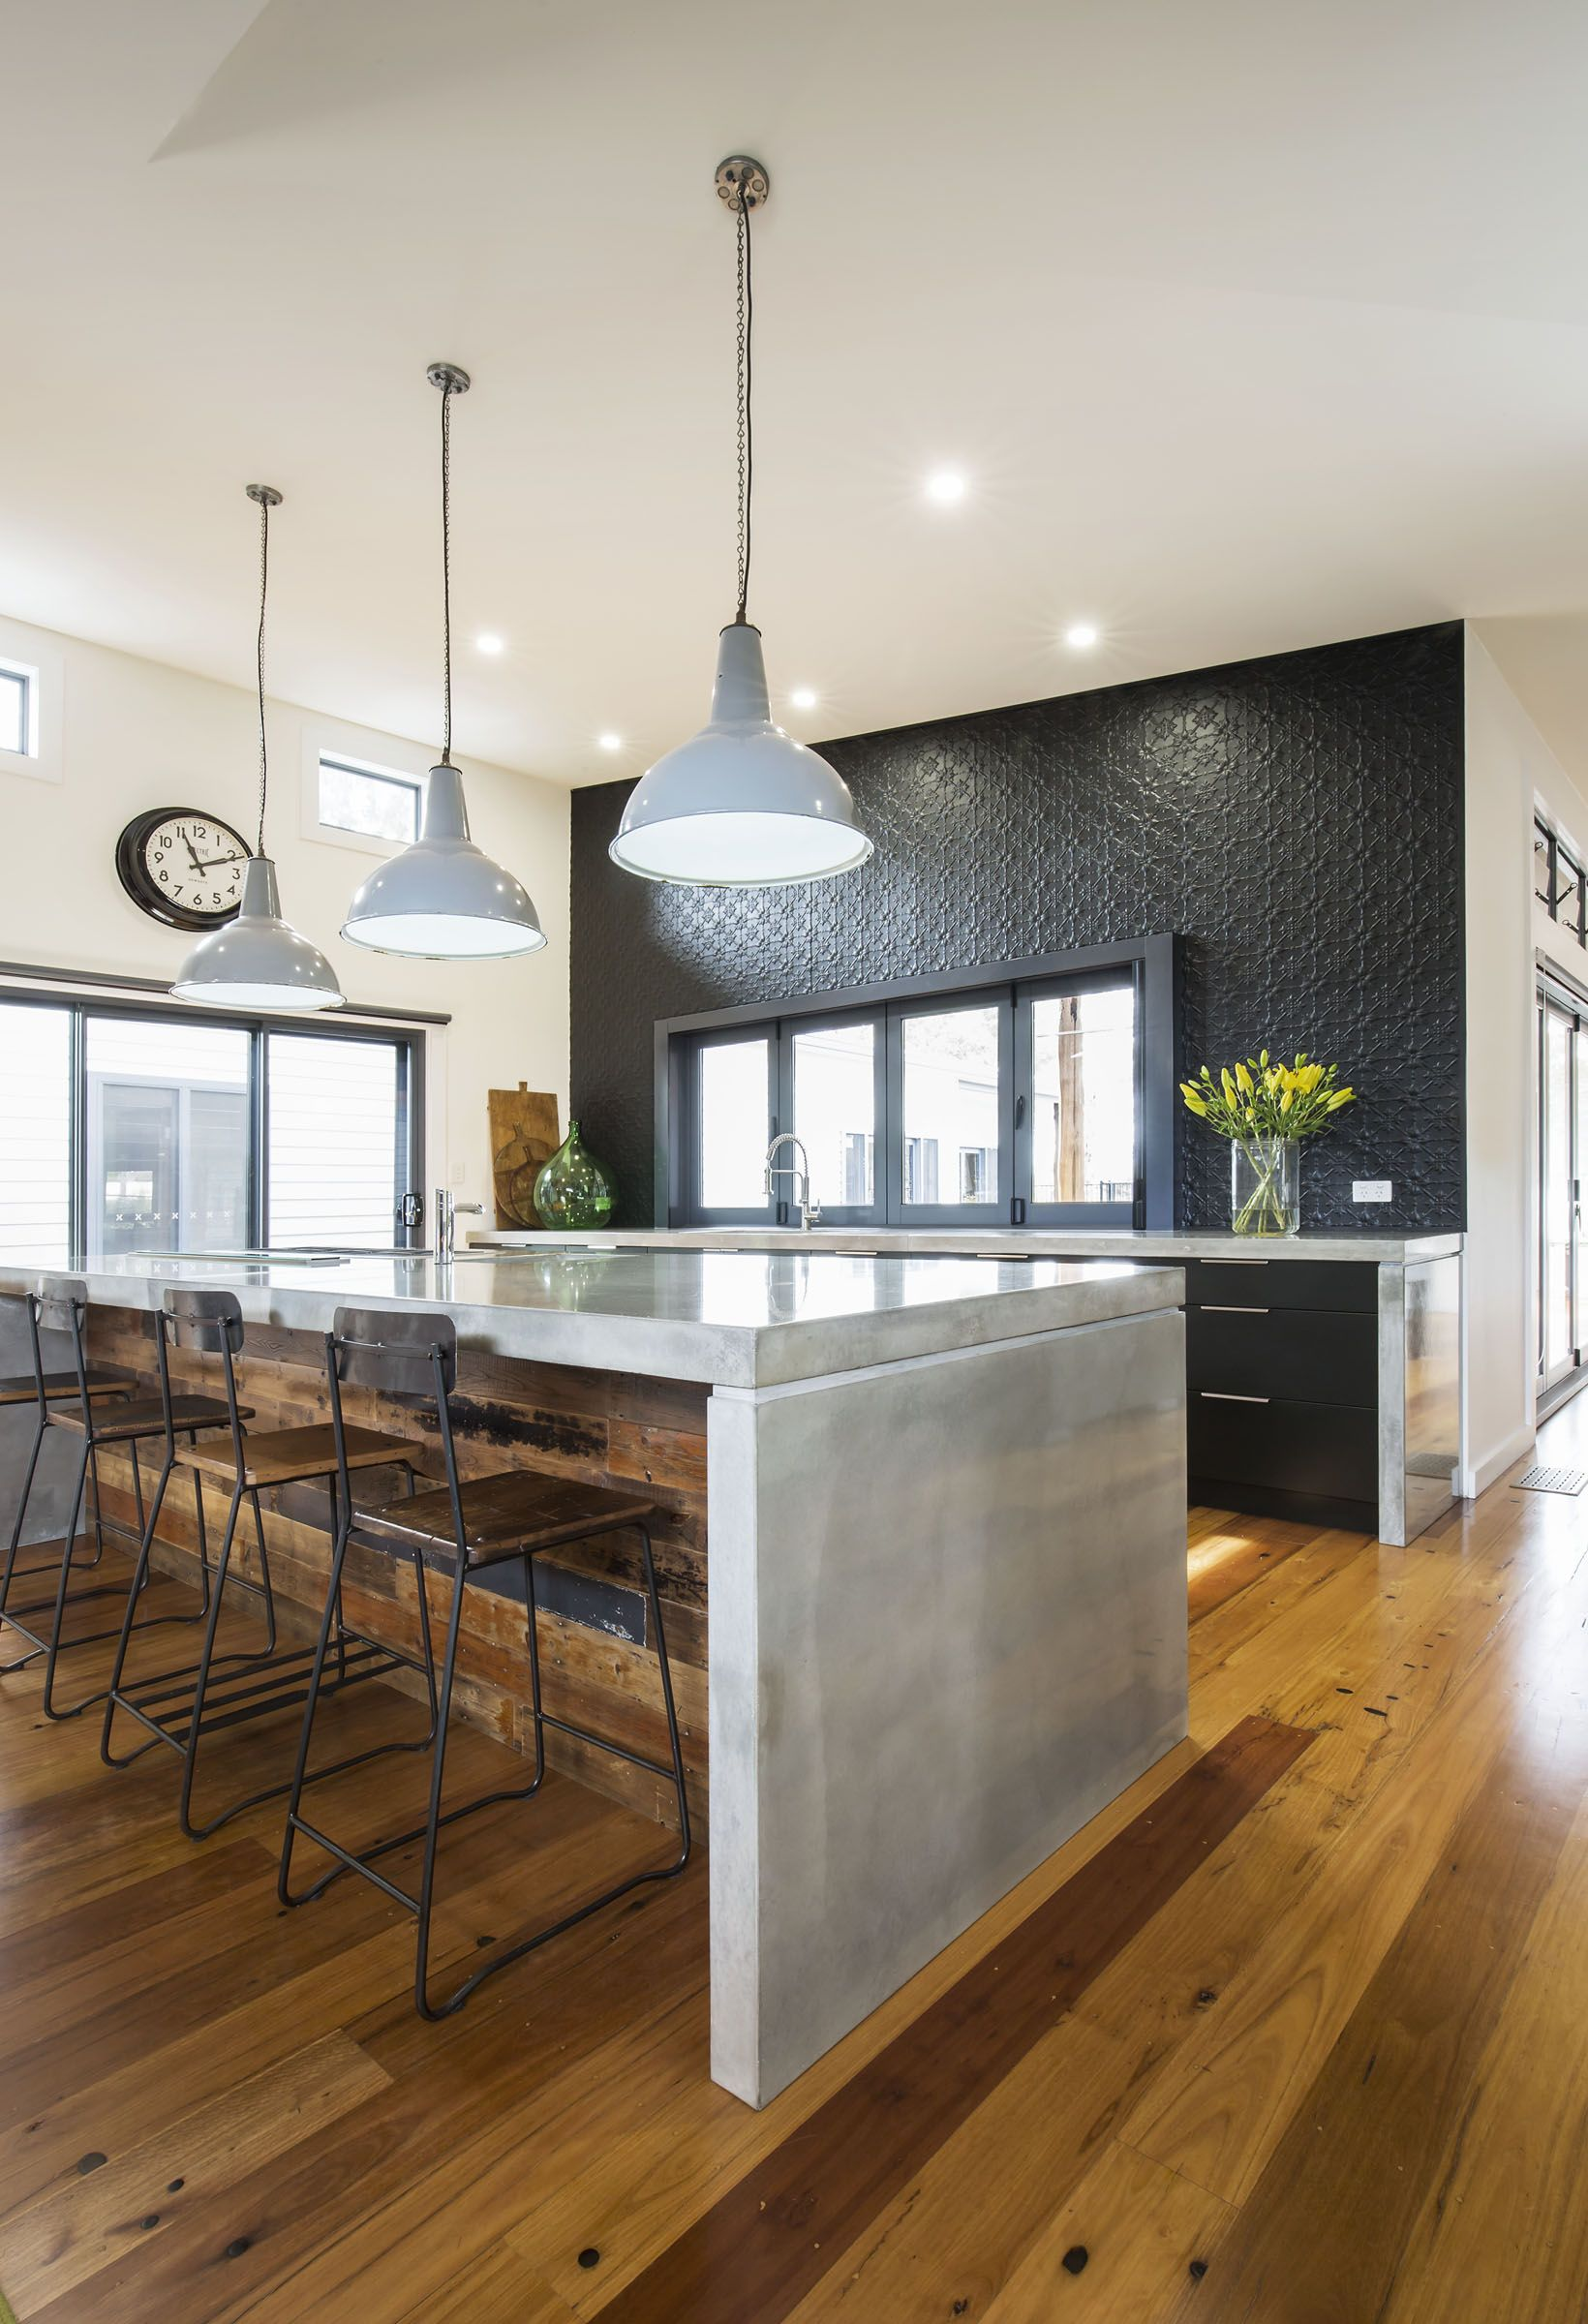 Industrial Kitchen Flooring Industrial Kitchen With An Eclectic Twist Featuring Concrete